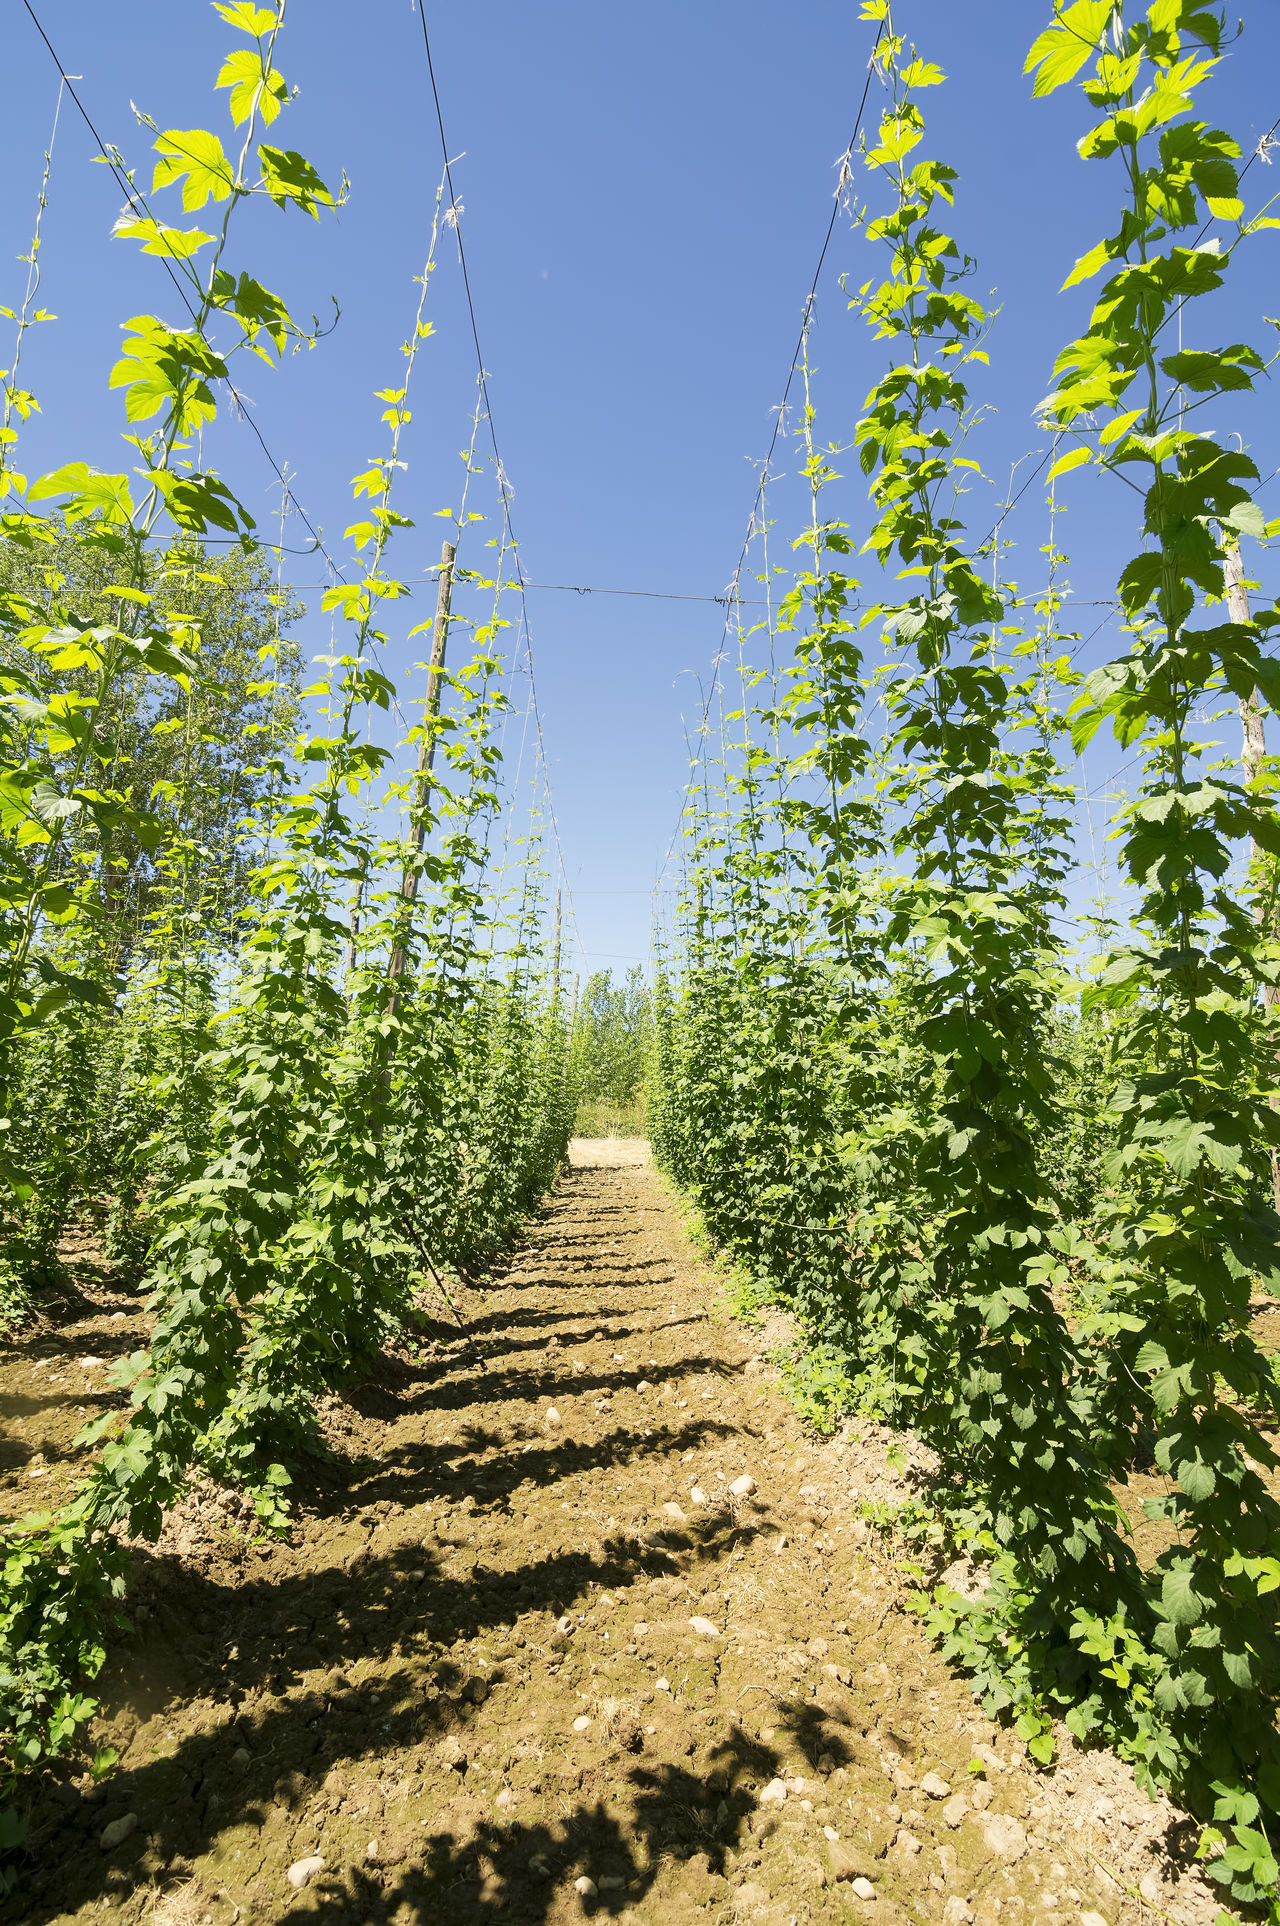 farm hop plants in Villoria village, Leon, Spain Agriculture Photography Beauty In Nature Beer Bio Blue Sky Brewery Color Ecology Farm Land Farmer Boyz Cruz Farming Green Color Growth Hop Humuluslupulus Leaves LeonEsp  Lupulus No People Outdoors Plant Ripe Ripe Fruit